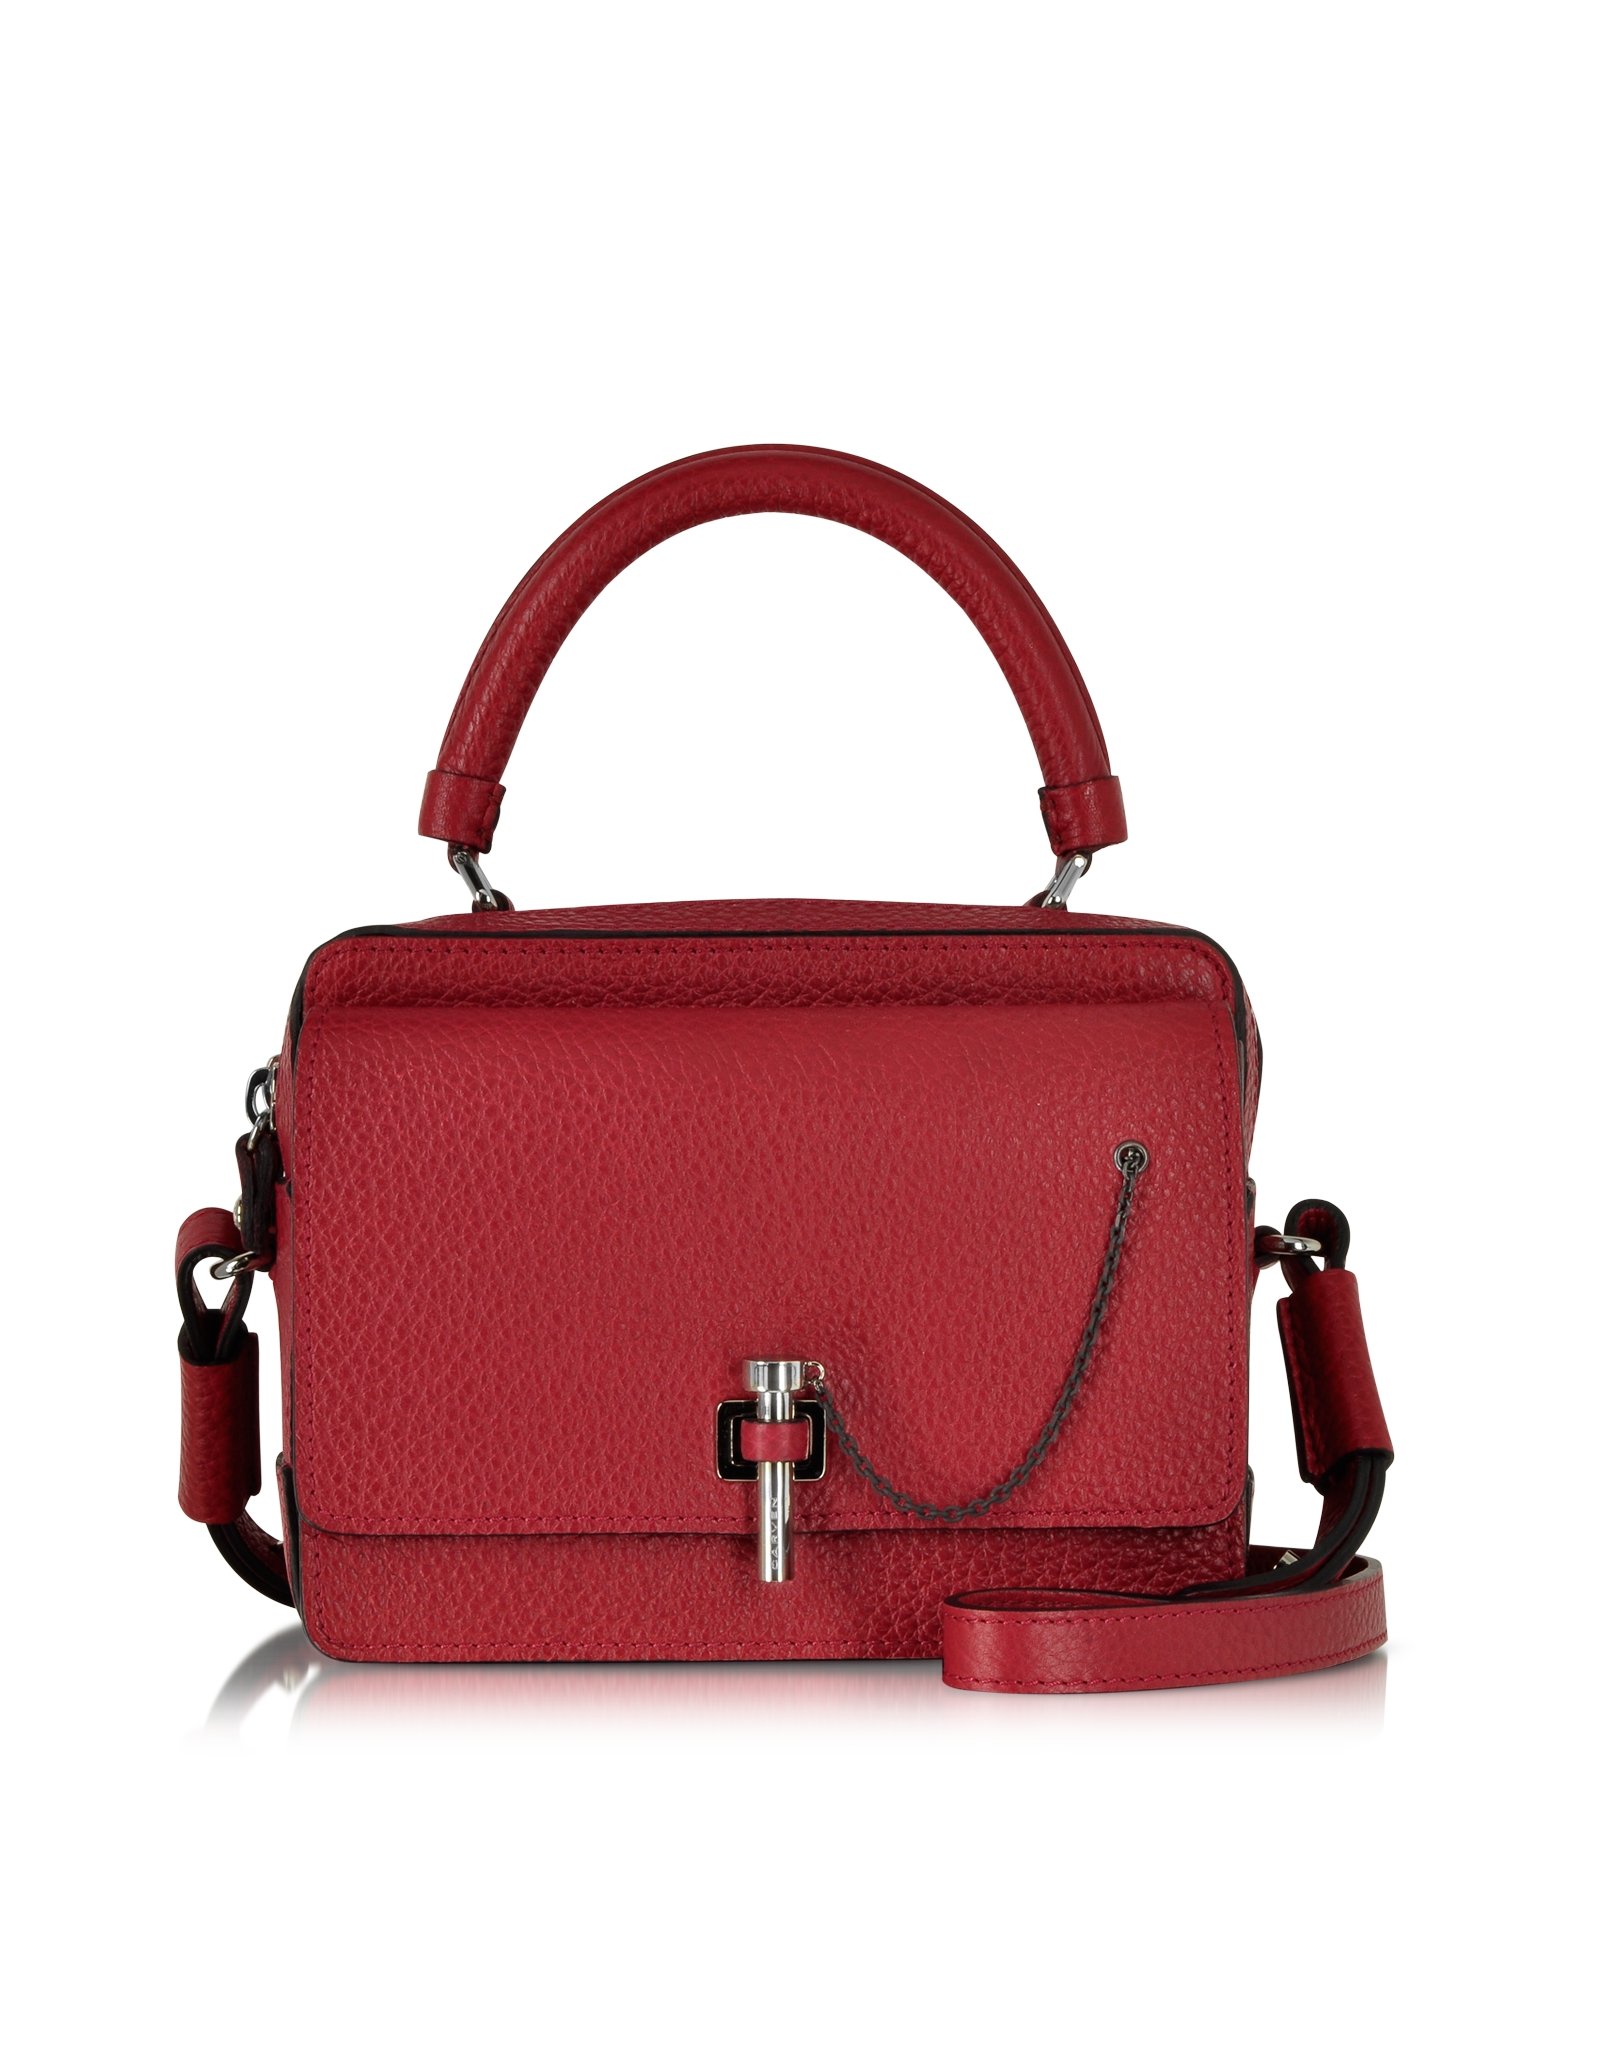 abb80f41a8ac Carven Malher Grained Leather Small Handbag in Red - Lyst